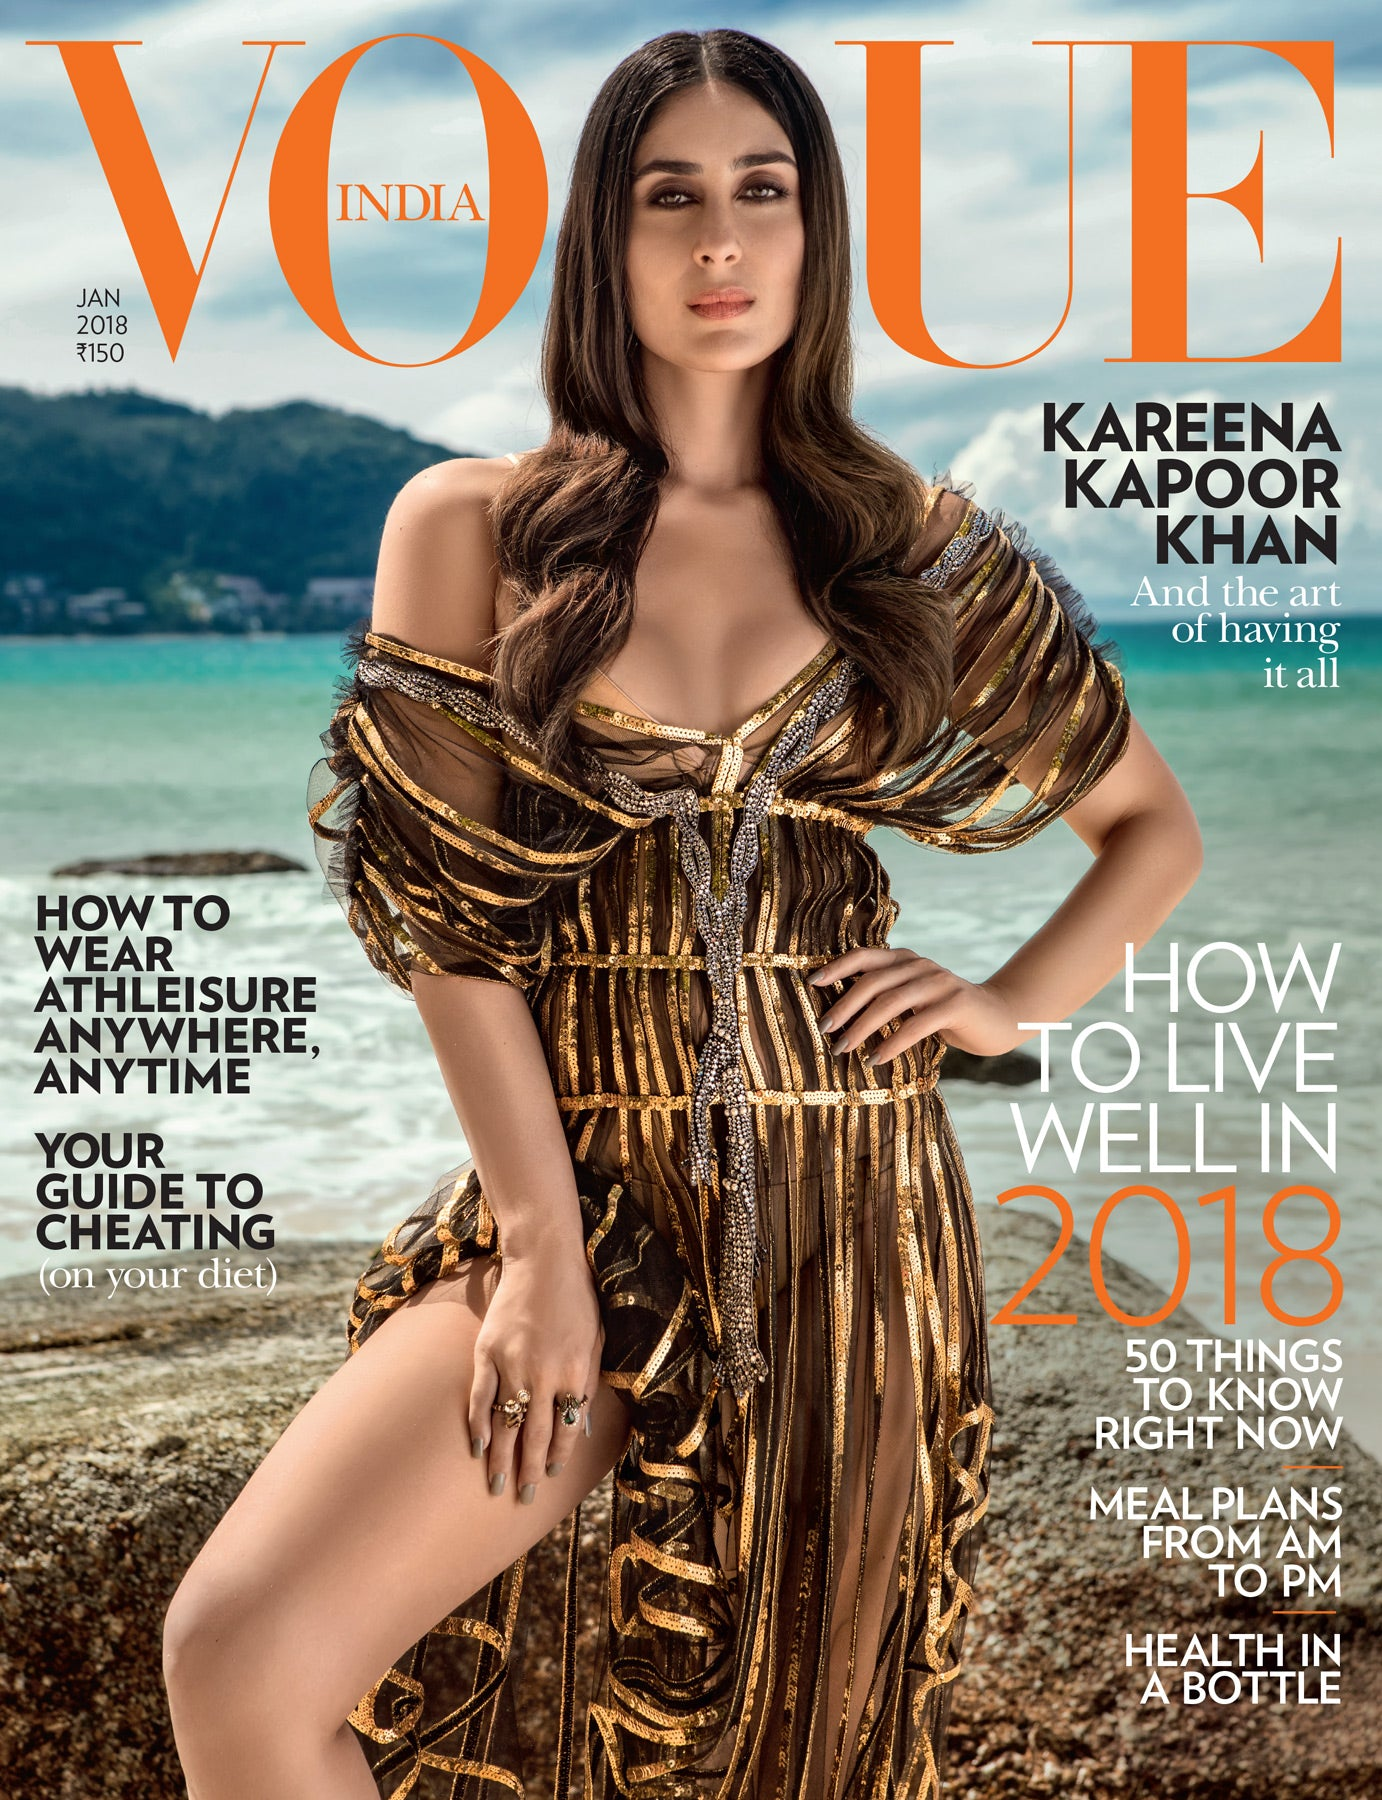 Kareena Kapoor's Looked Super Sexy At Vogue's Cover Girl Photoshoot